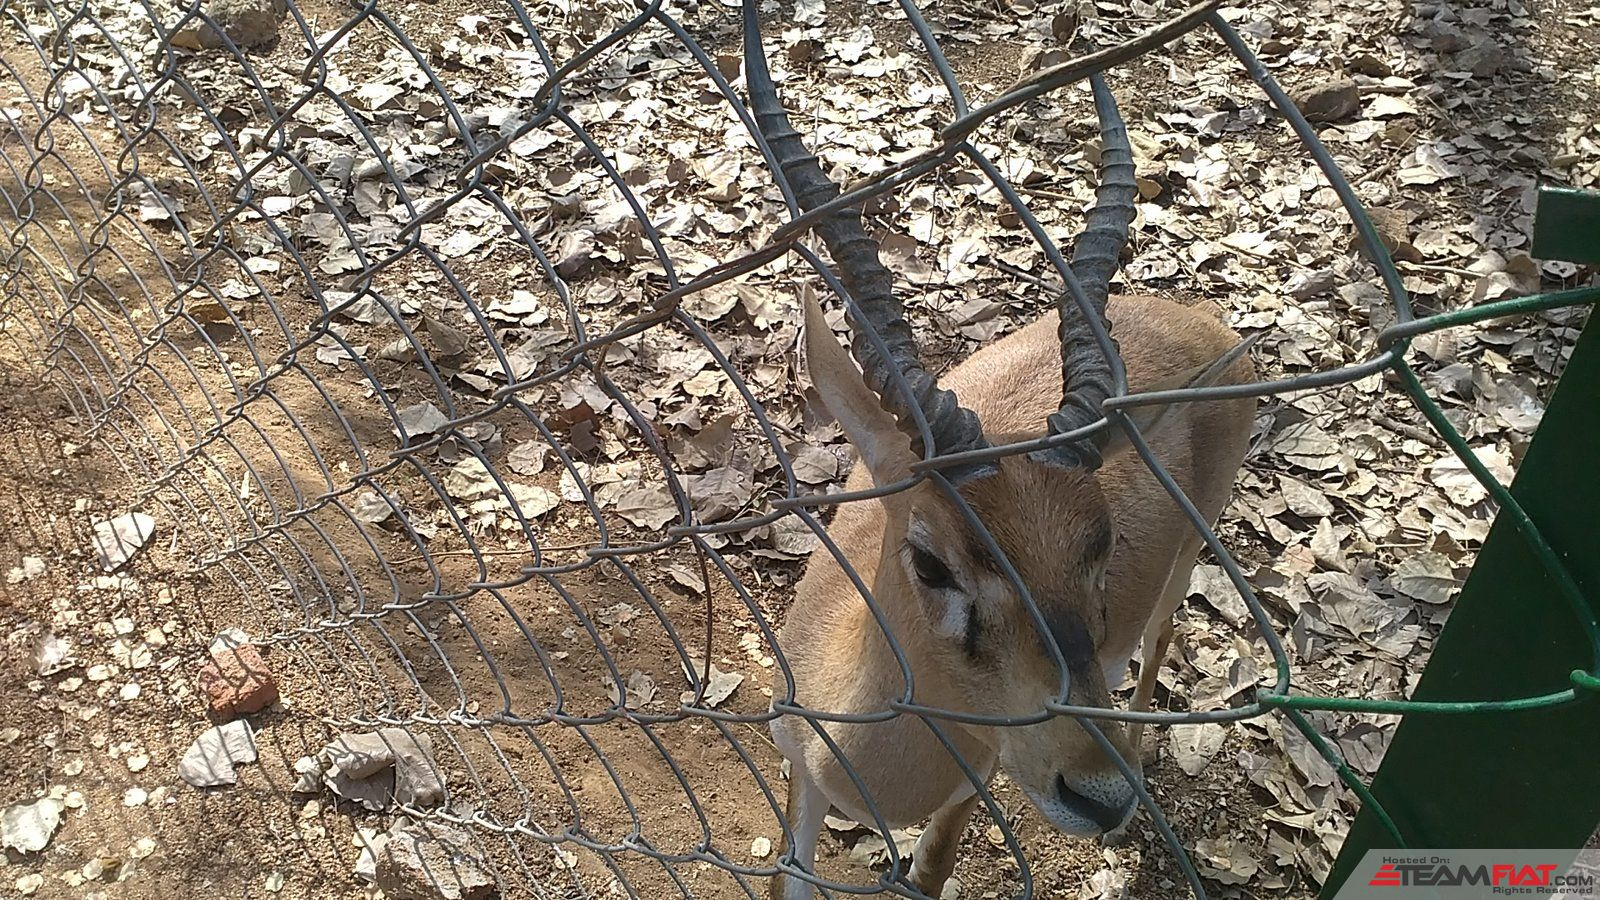 Deer in fence.jpg